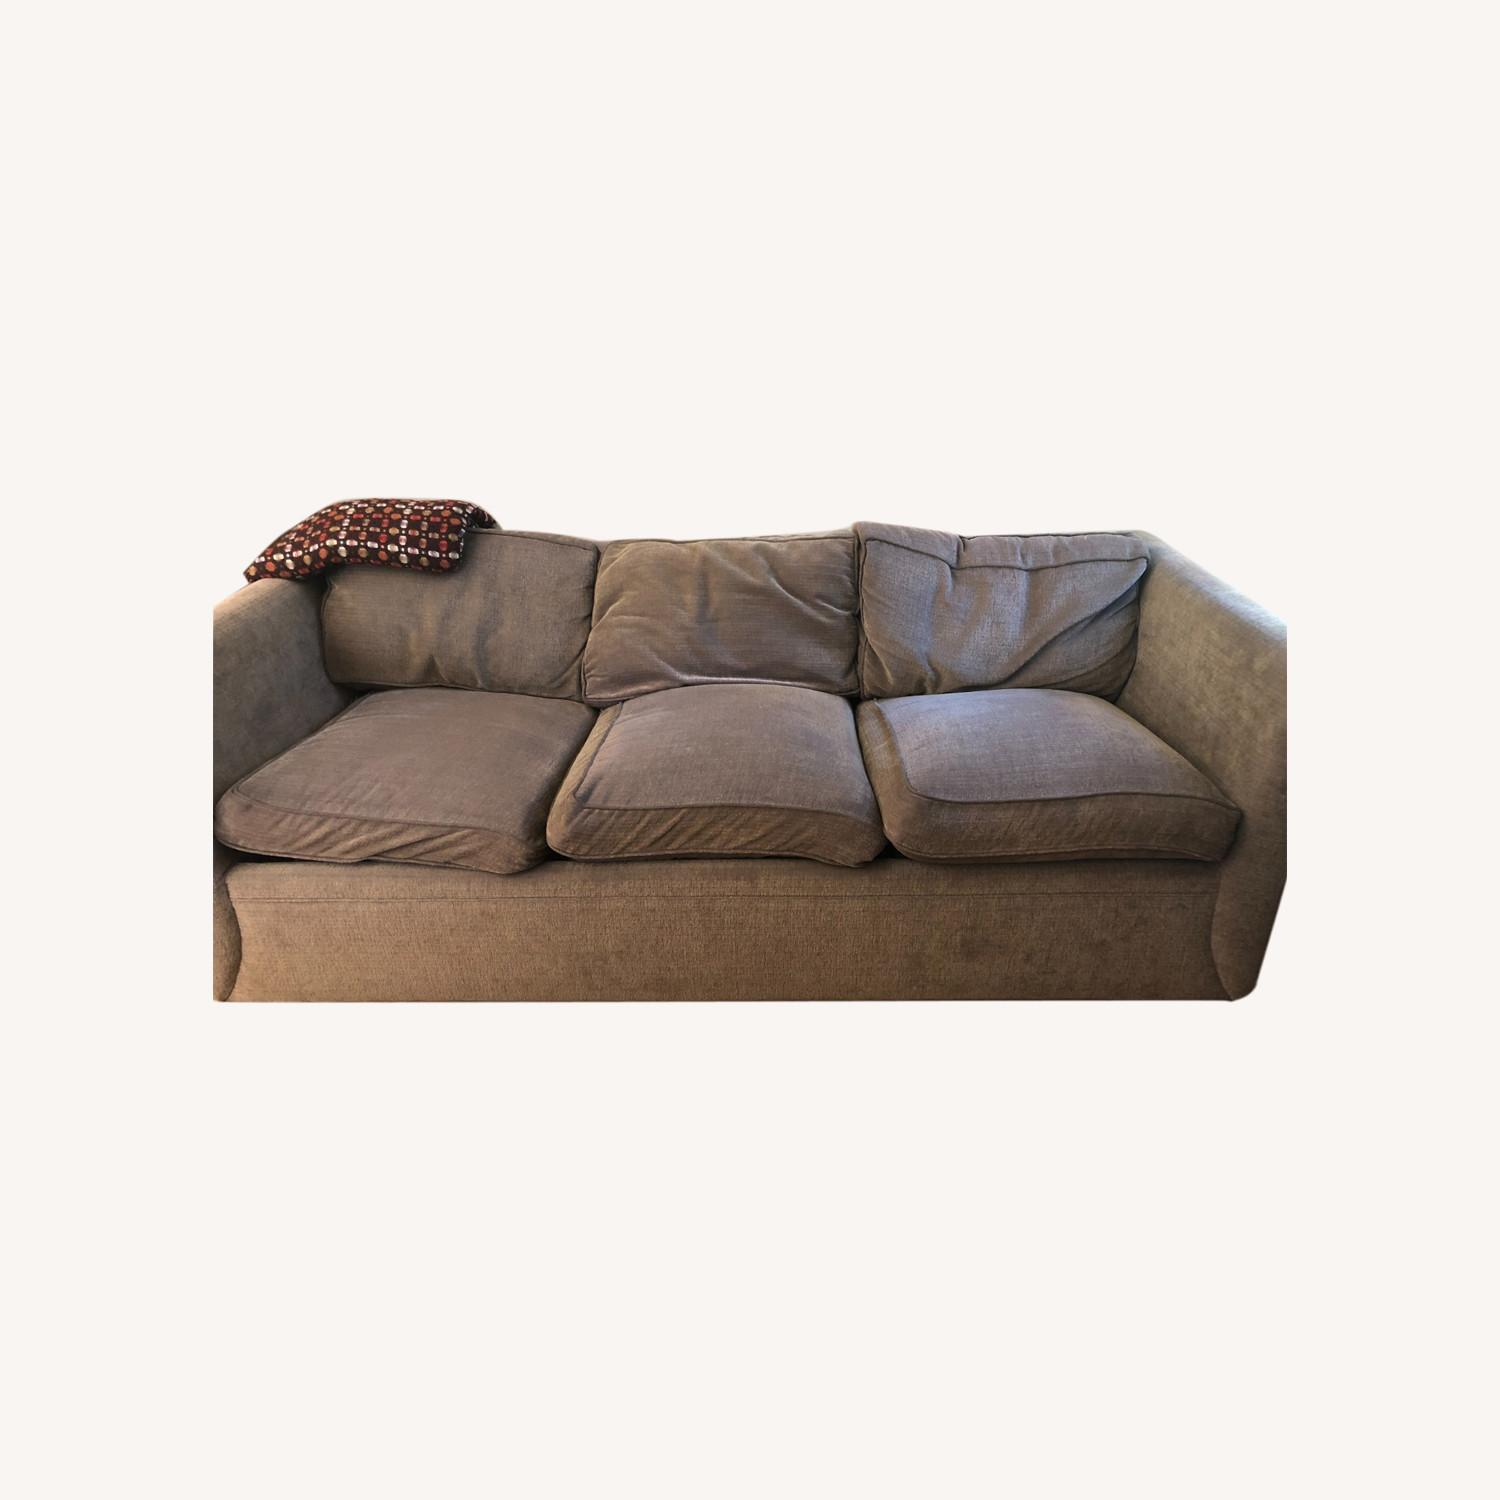 Carlyle Sofa with Full-size pull-out Bed - image-0